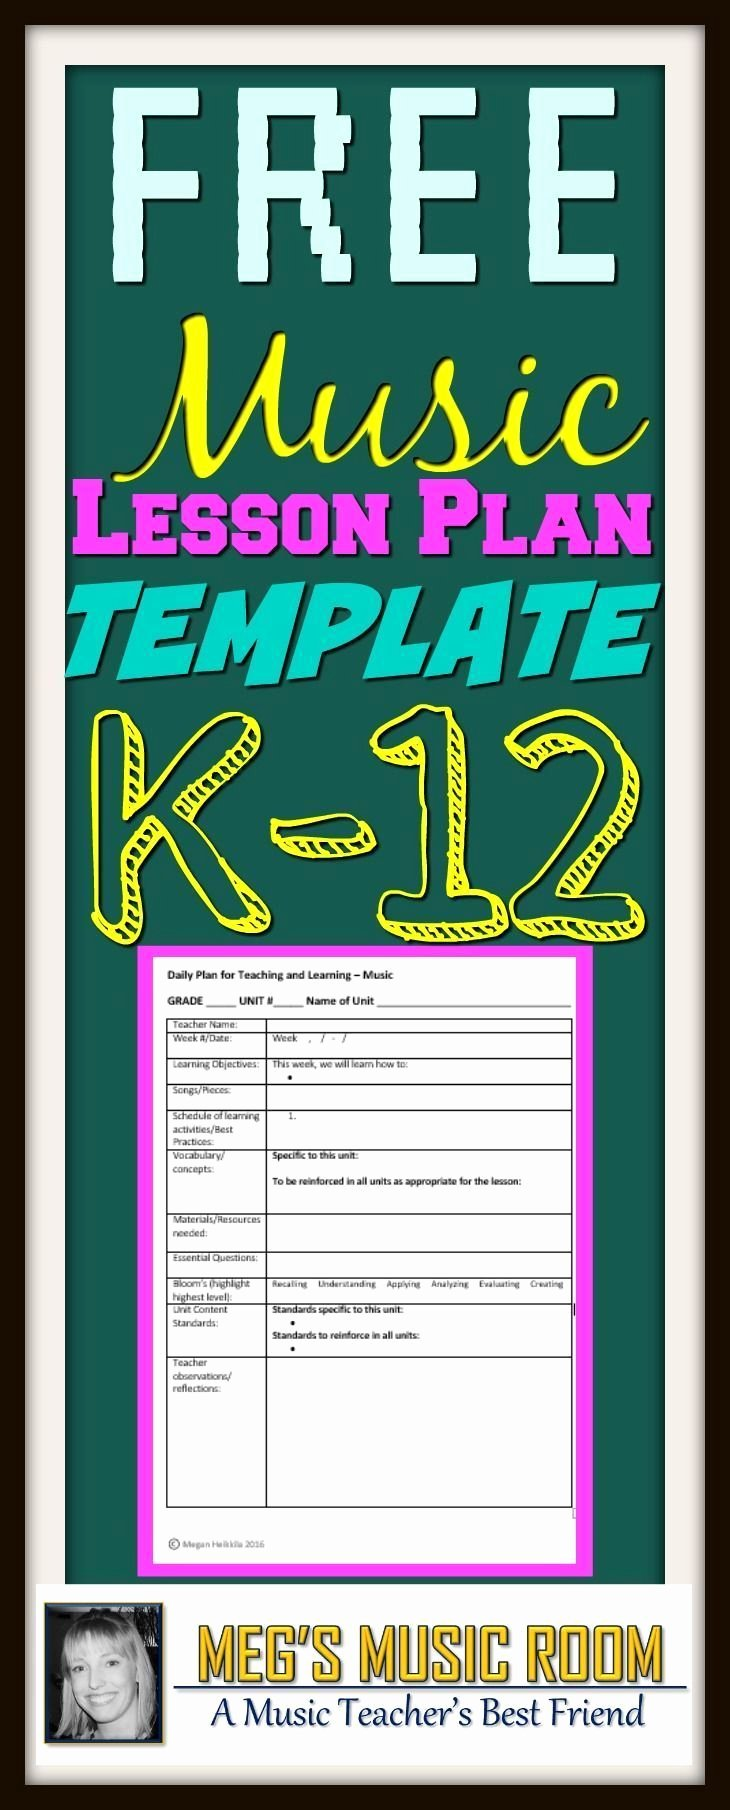 Elementary Music Lesson Plan Template Awesome 2875 Best Freebies for Music Teachers Images On Pinterest